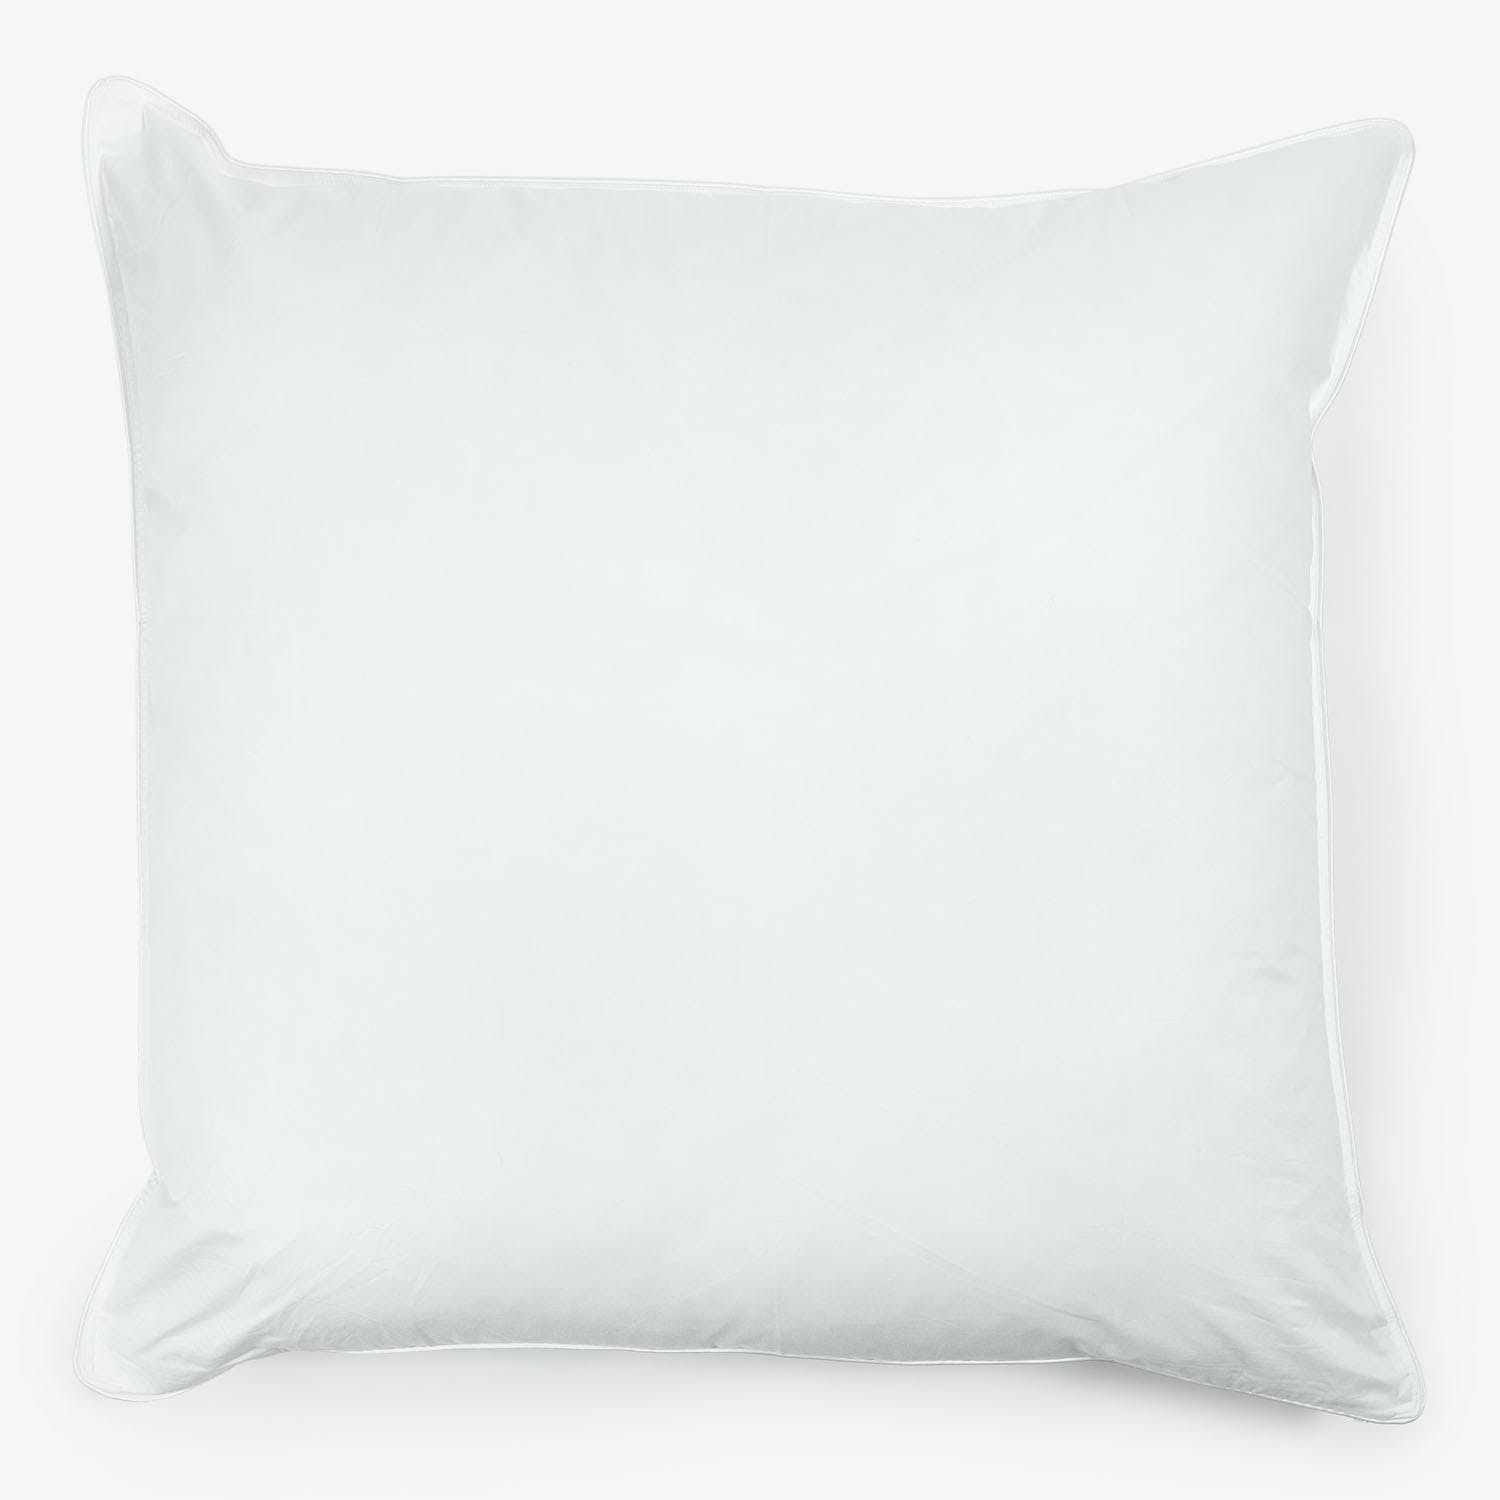 Simply Down King Cotton Sateen Pillow Protector